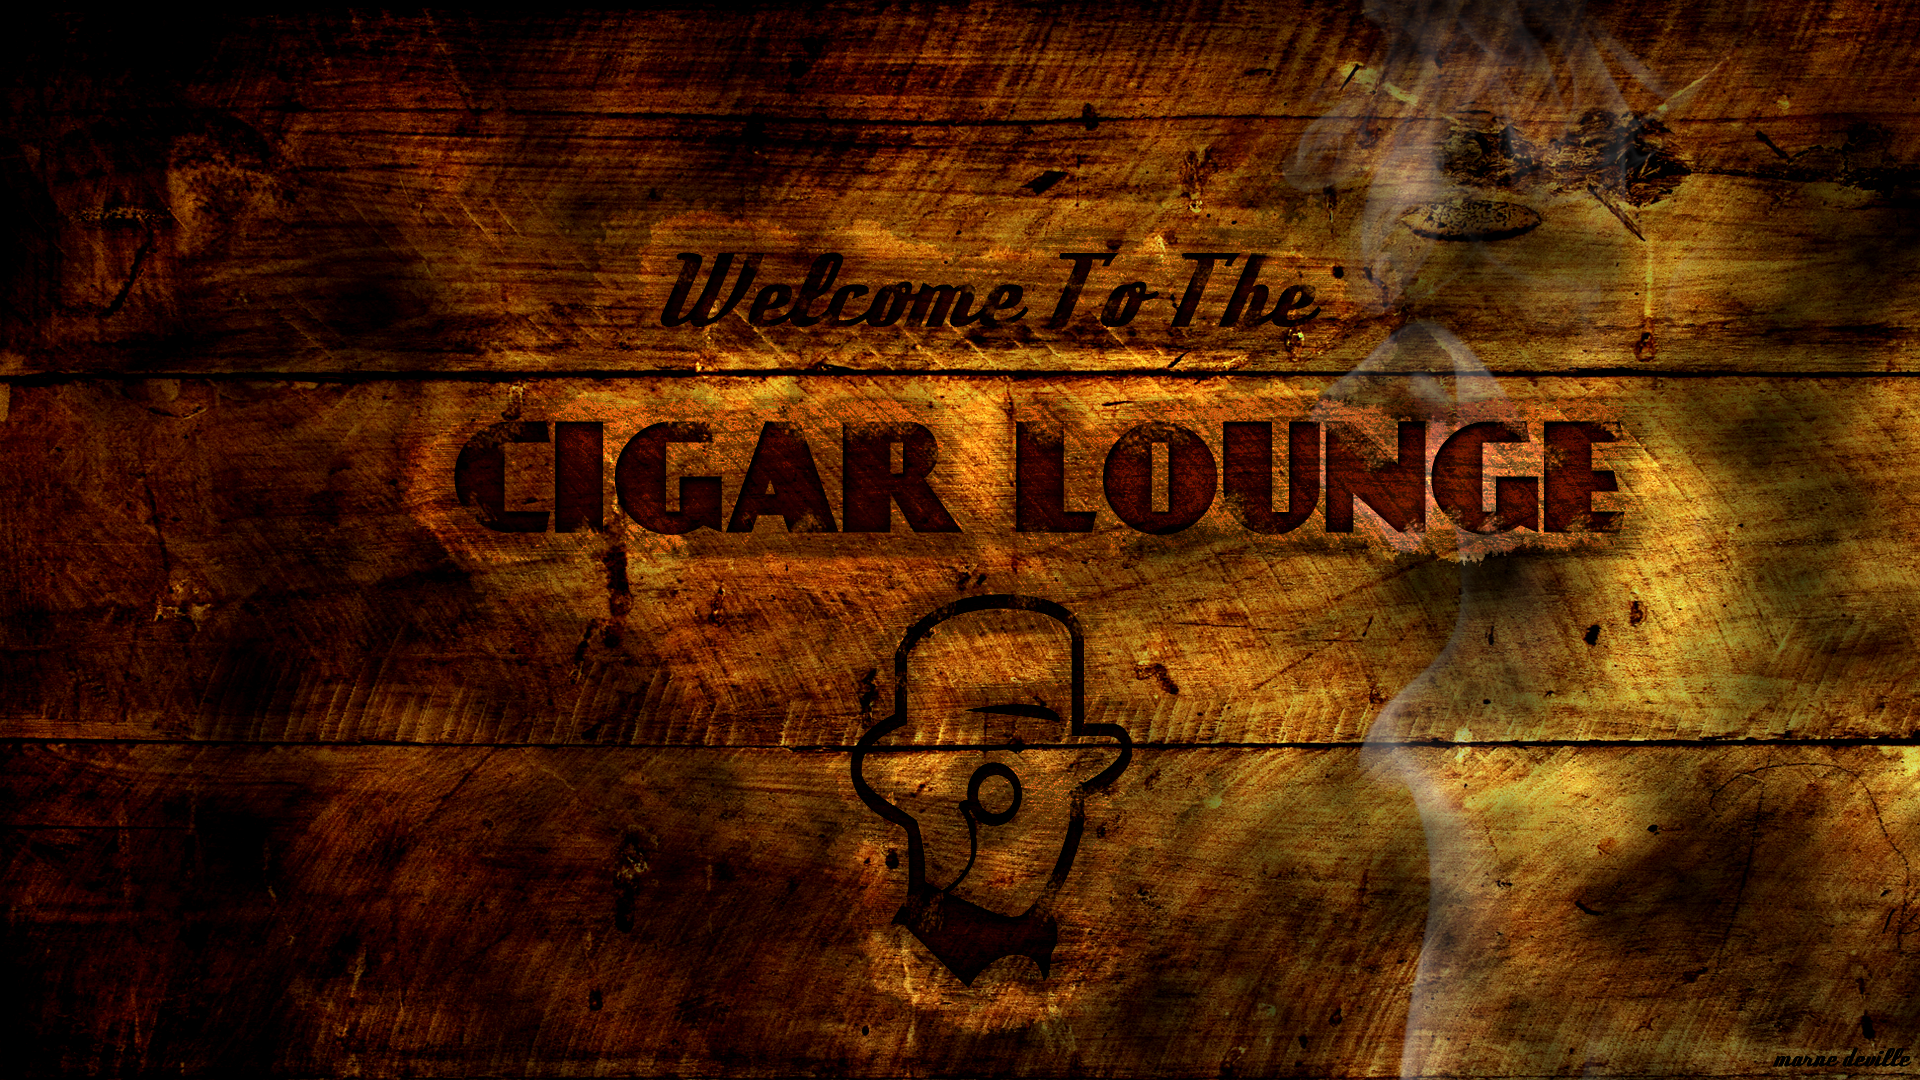 EVE Online - Gents Cigar Lounge Promo